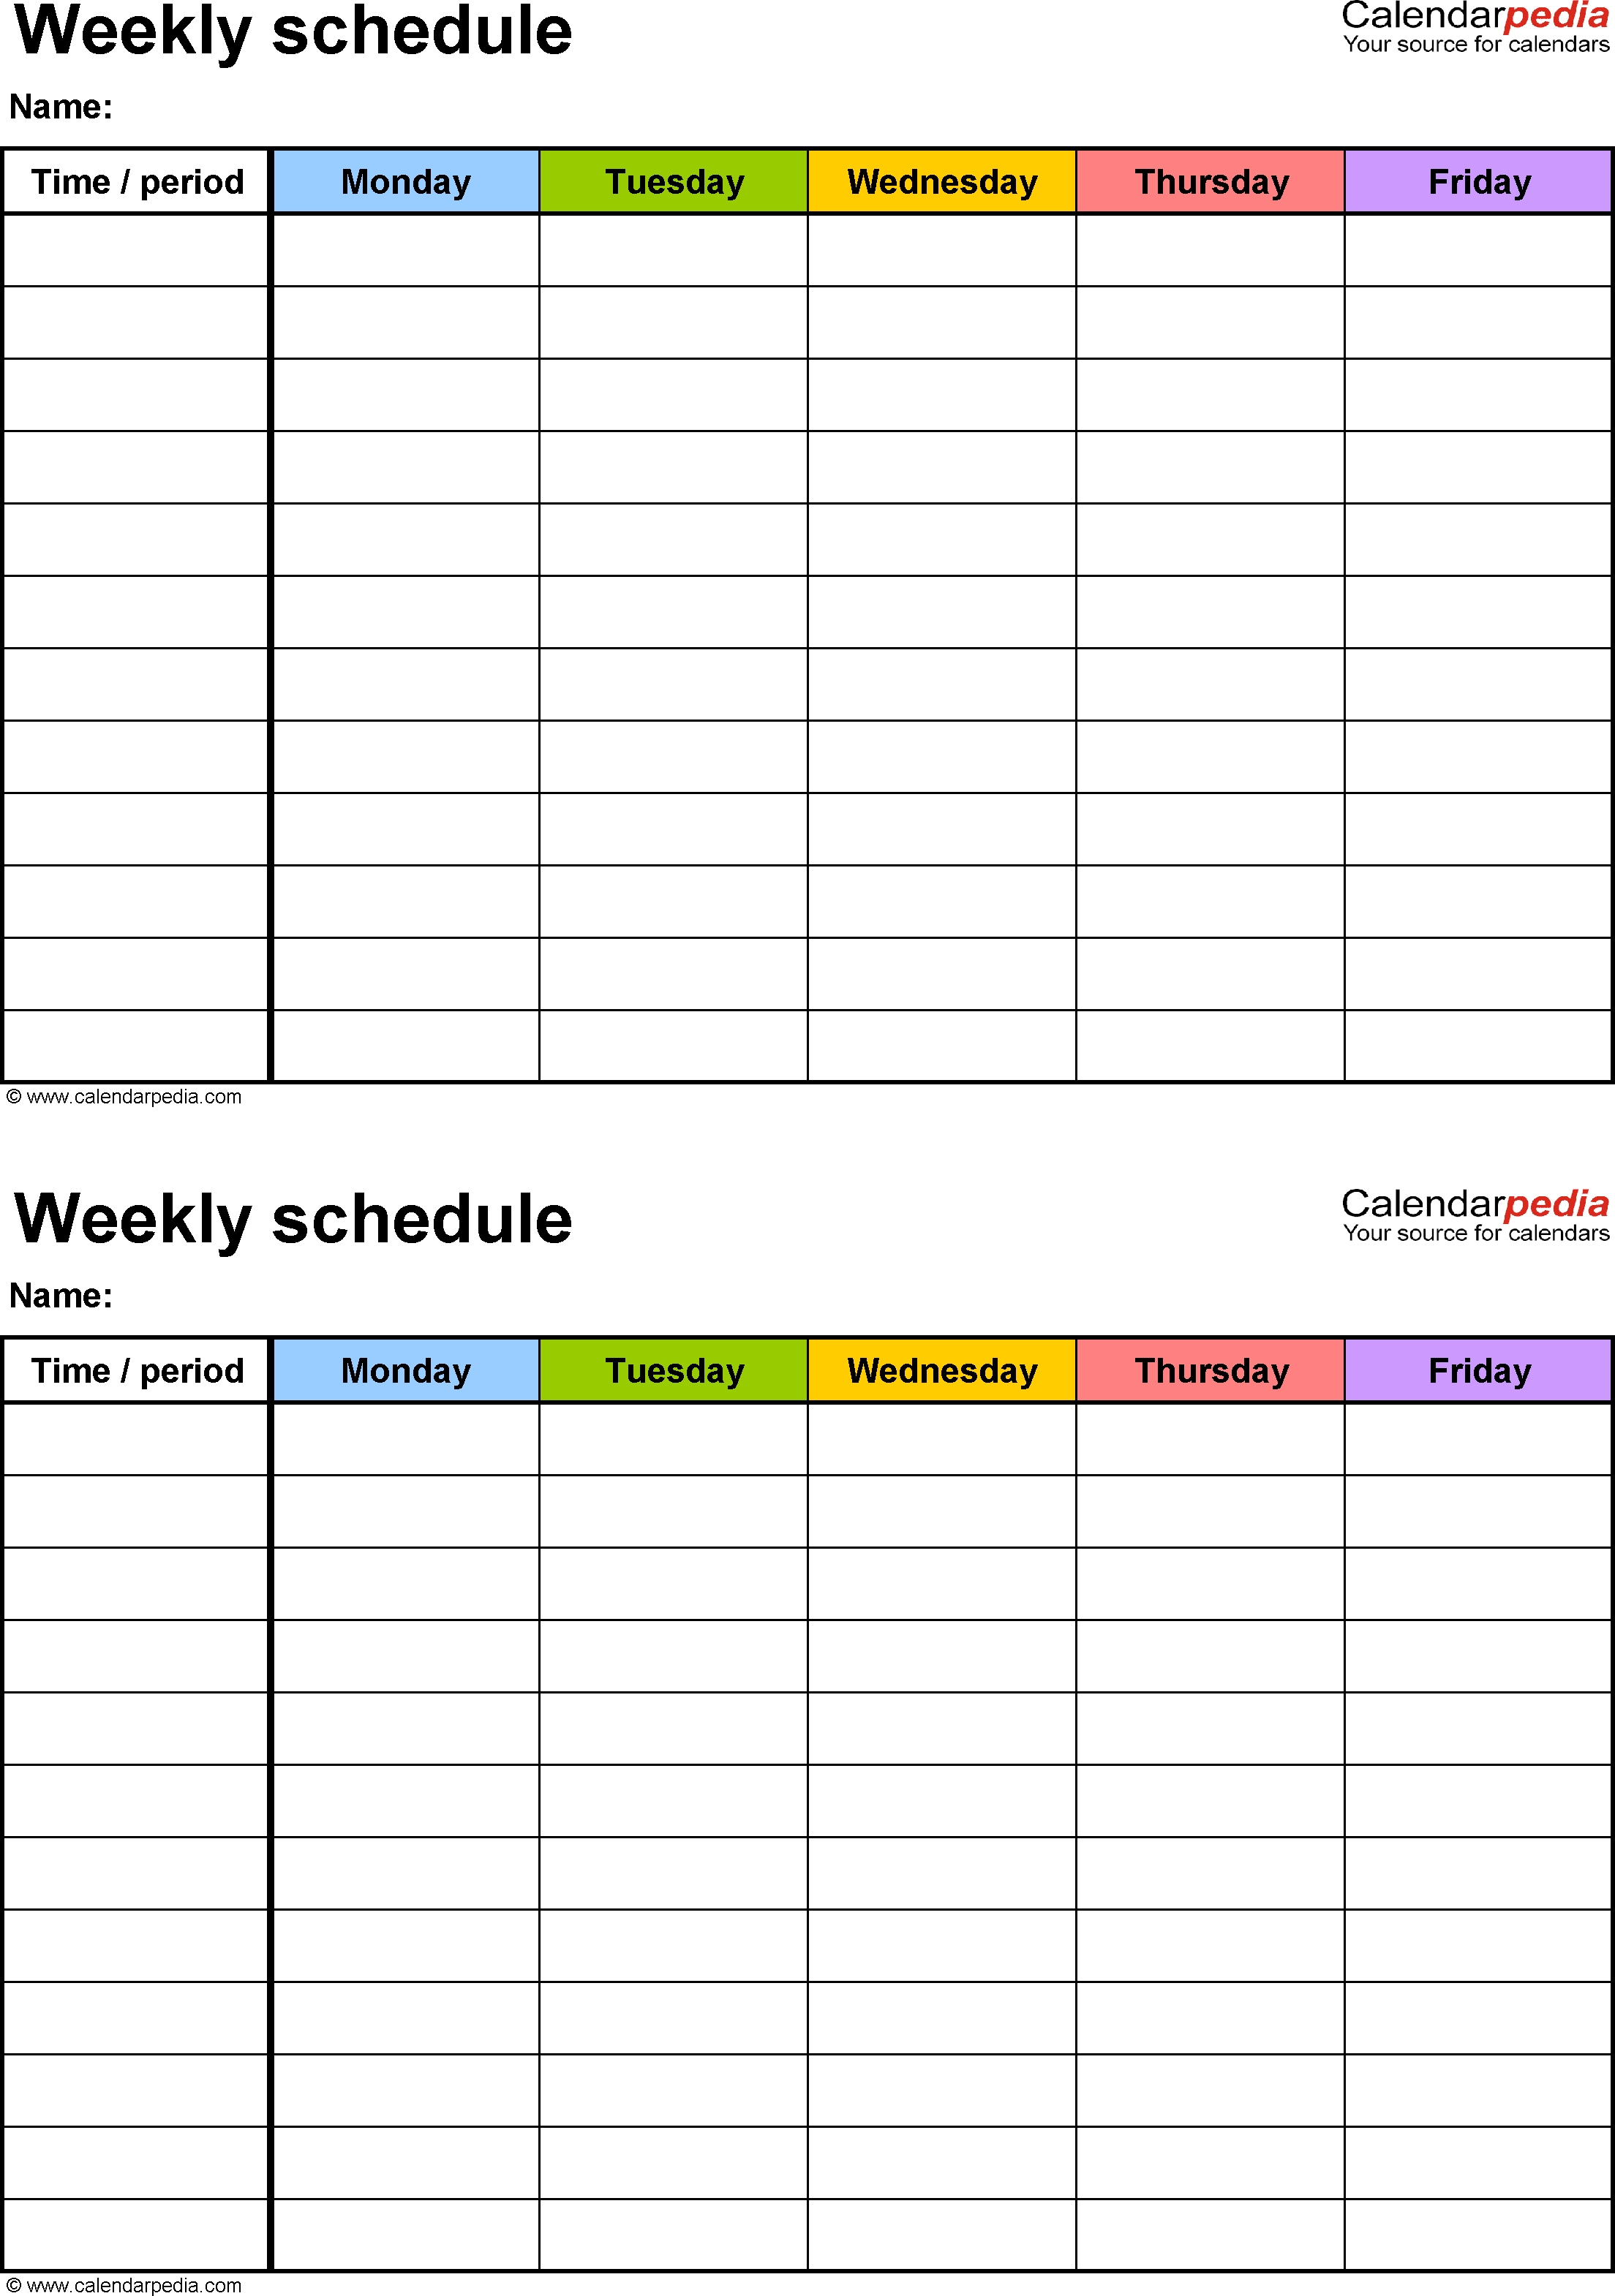 Free Weekly Schedule Templates For Word - 18 Templates inside Microsoft Calendar Template Five Day